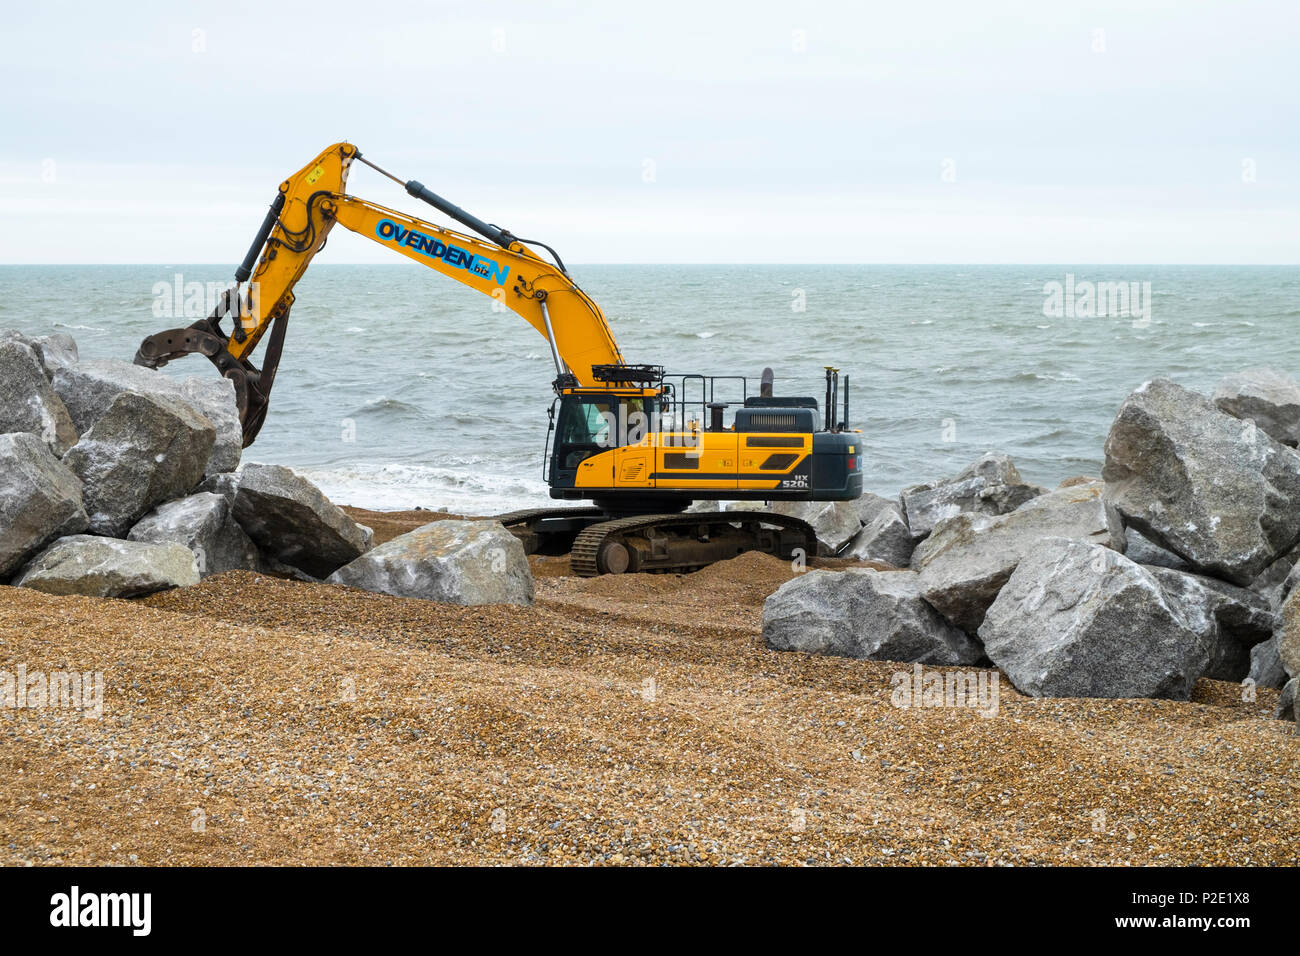 Stockpiling of 6-9 tonne rock for the Hastings coast protection works, harbour arm, hastings, east sussex, uk - Stock Image